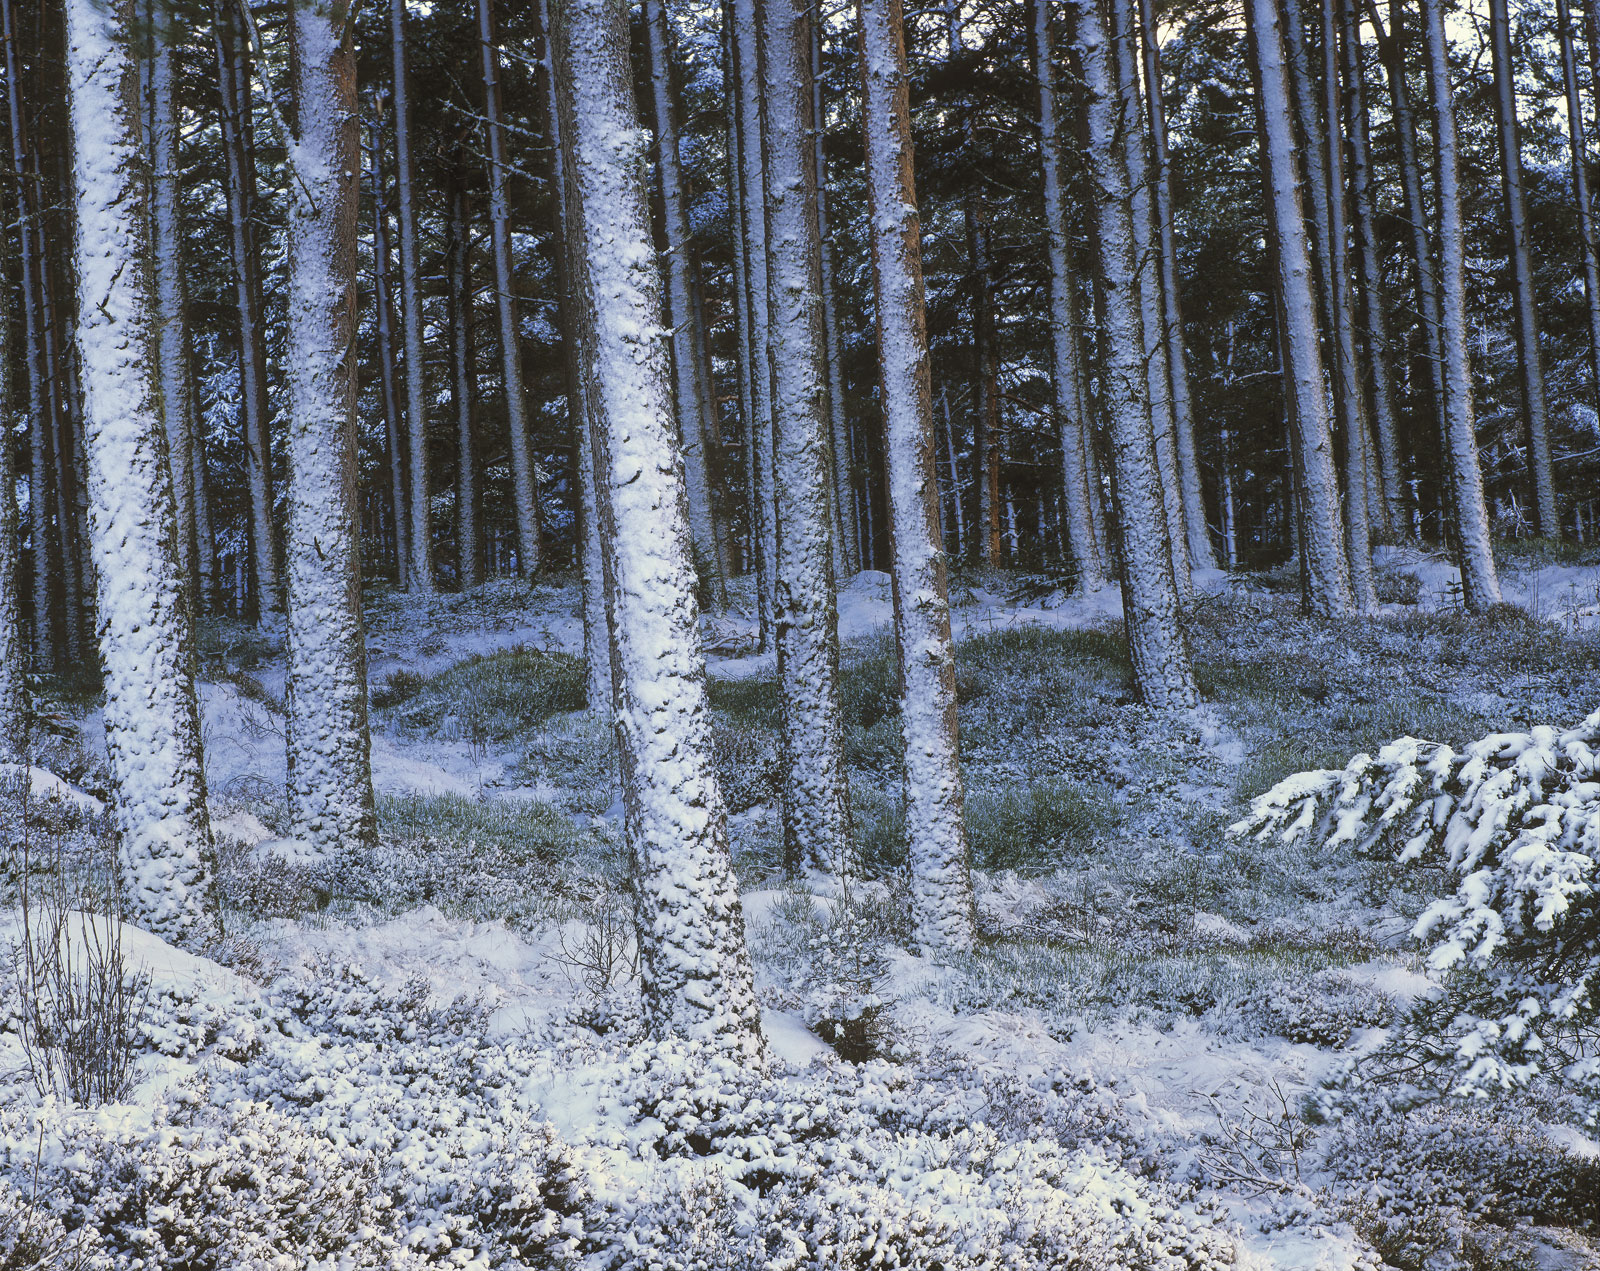 Snow Dusted Pines, Dava Moor, Moray, Scotland, plastered, snow, sunlight, periphery, woodland, grove, palette, muted, bl, photo